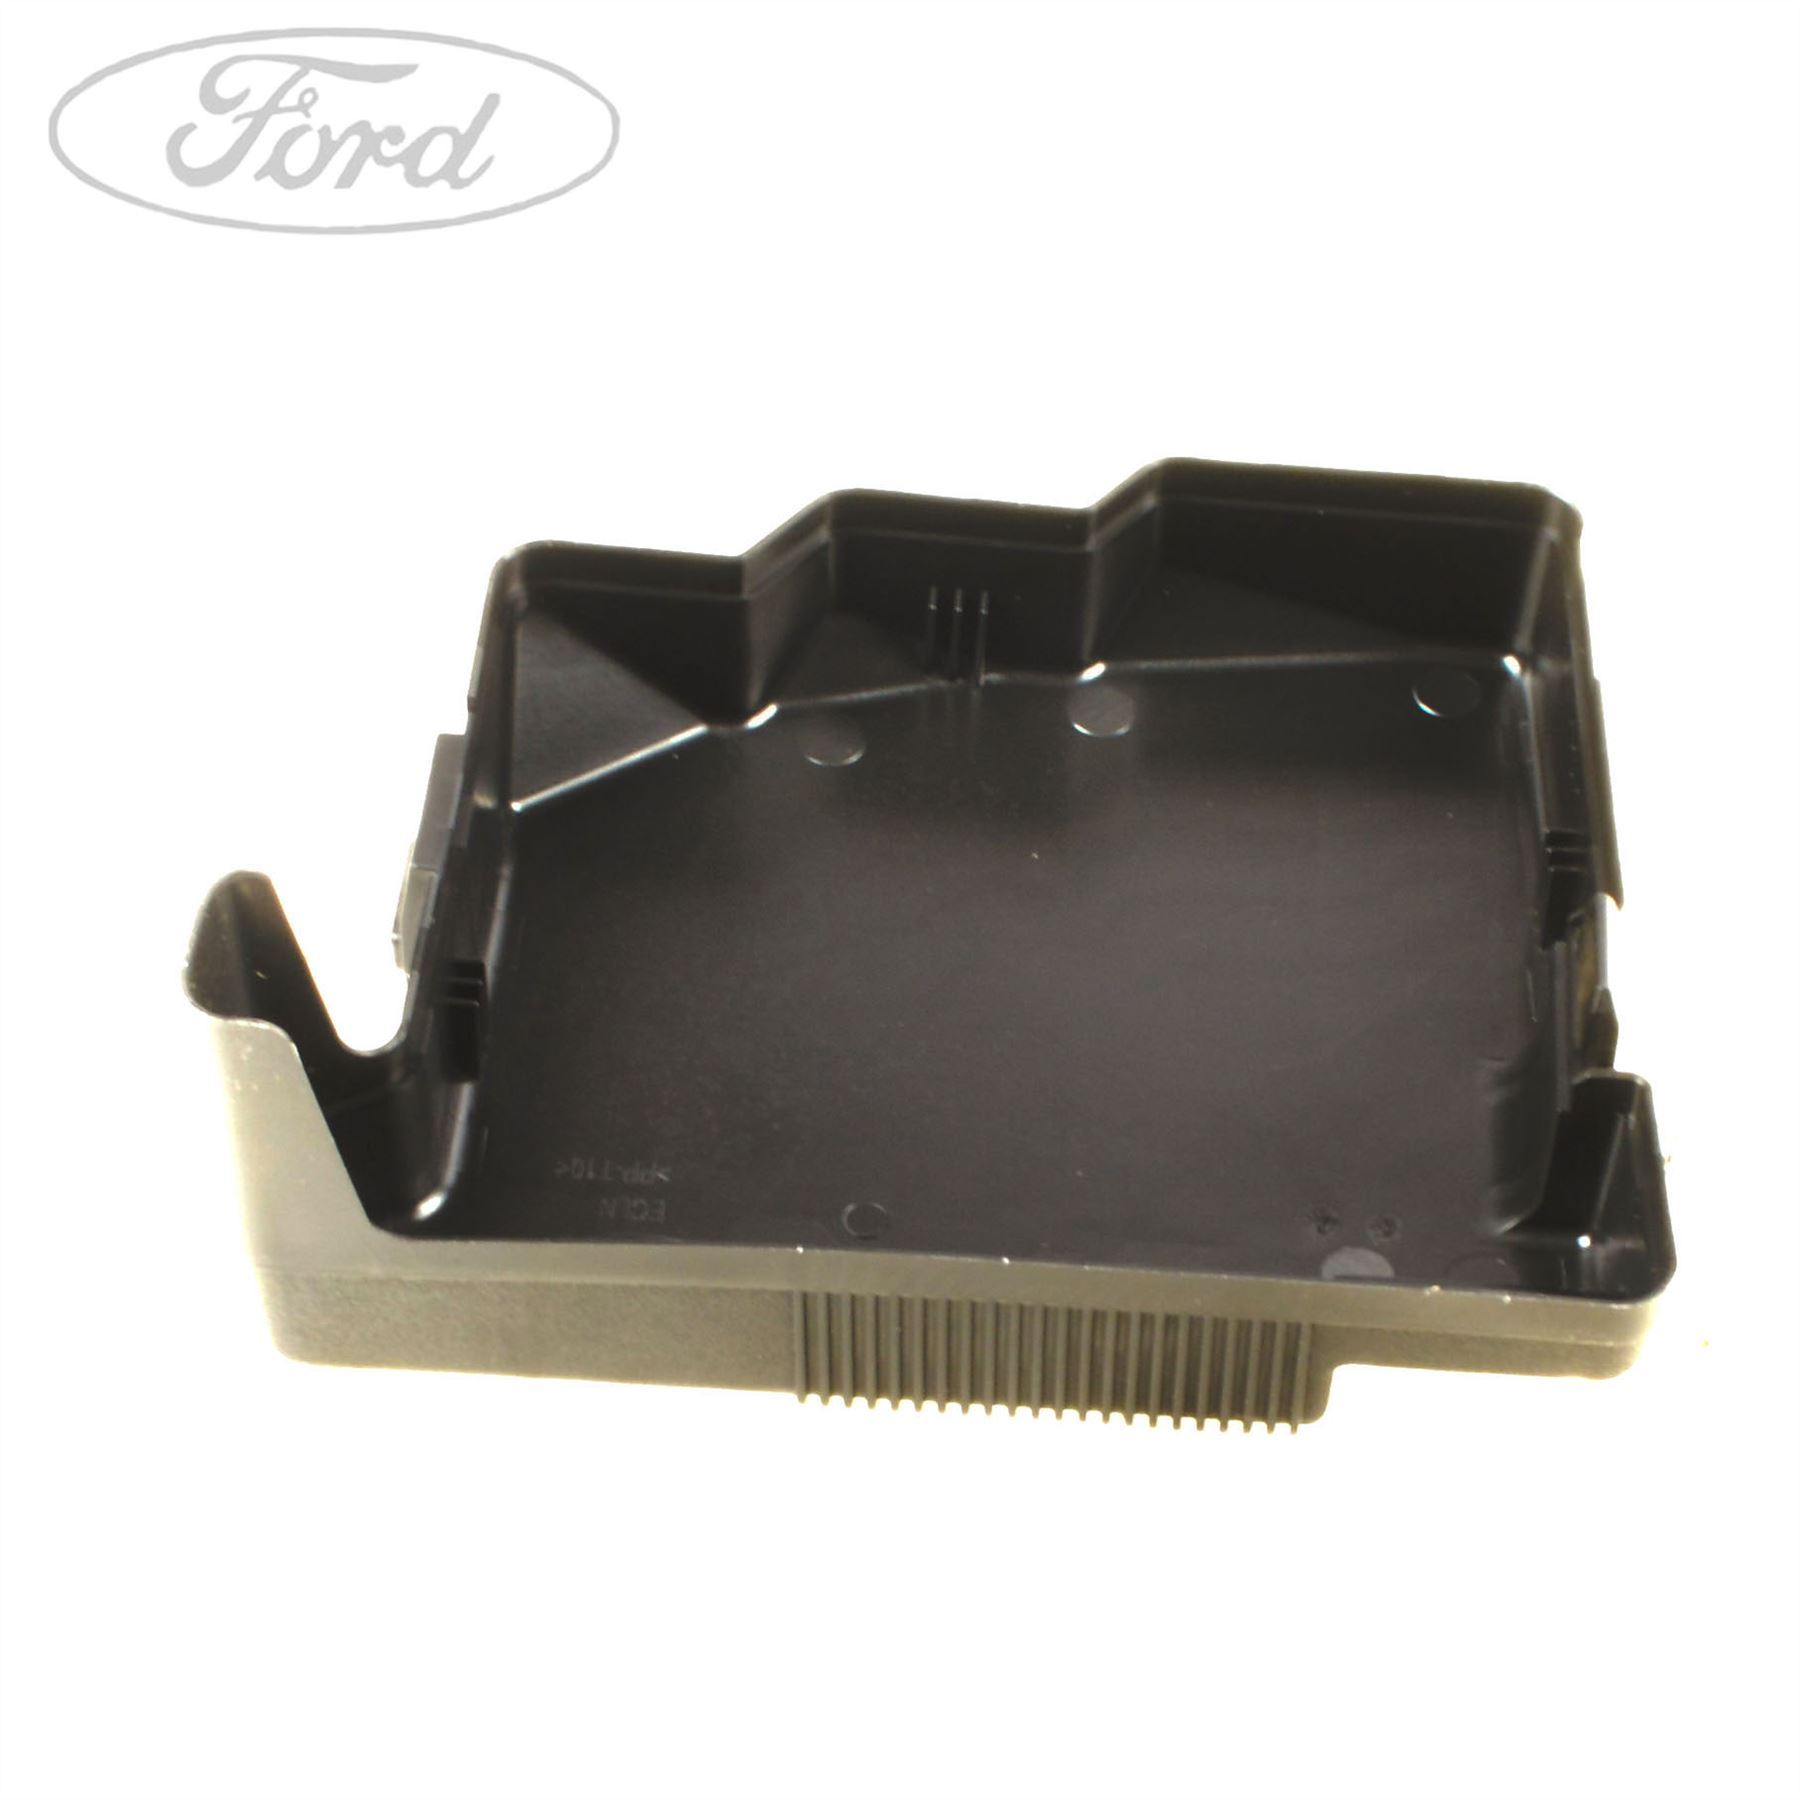 hight resolution of genuine ford fiesta mk7 fuse box cover 1515045